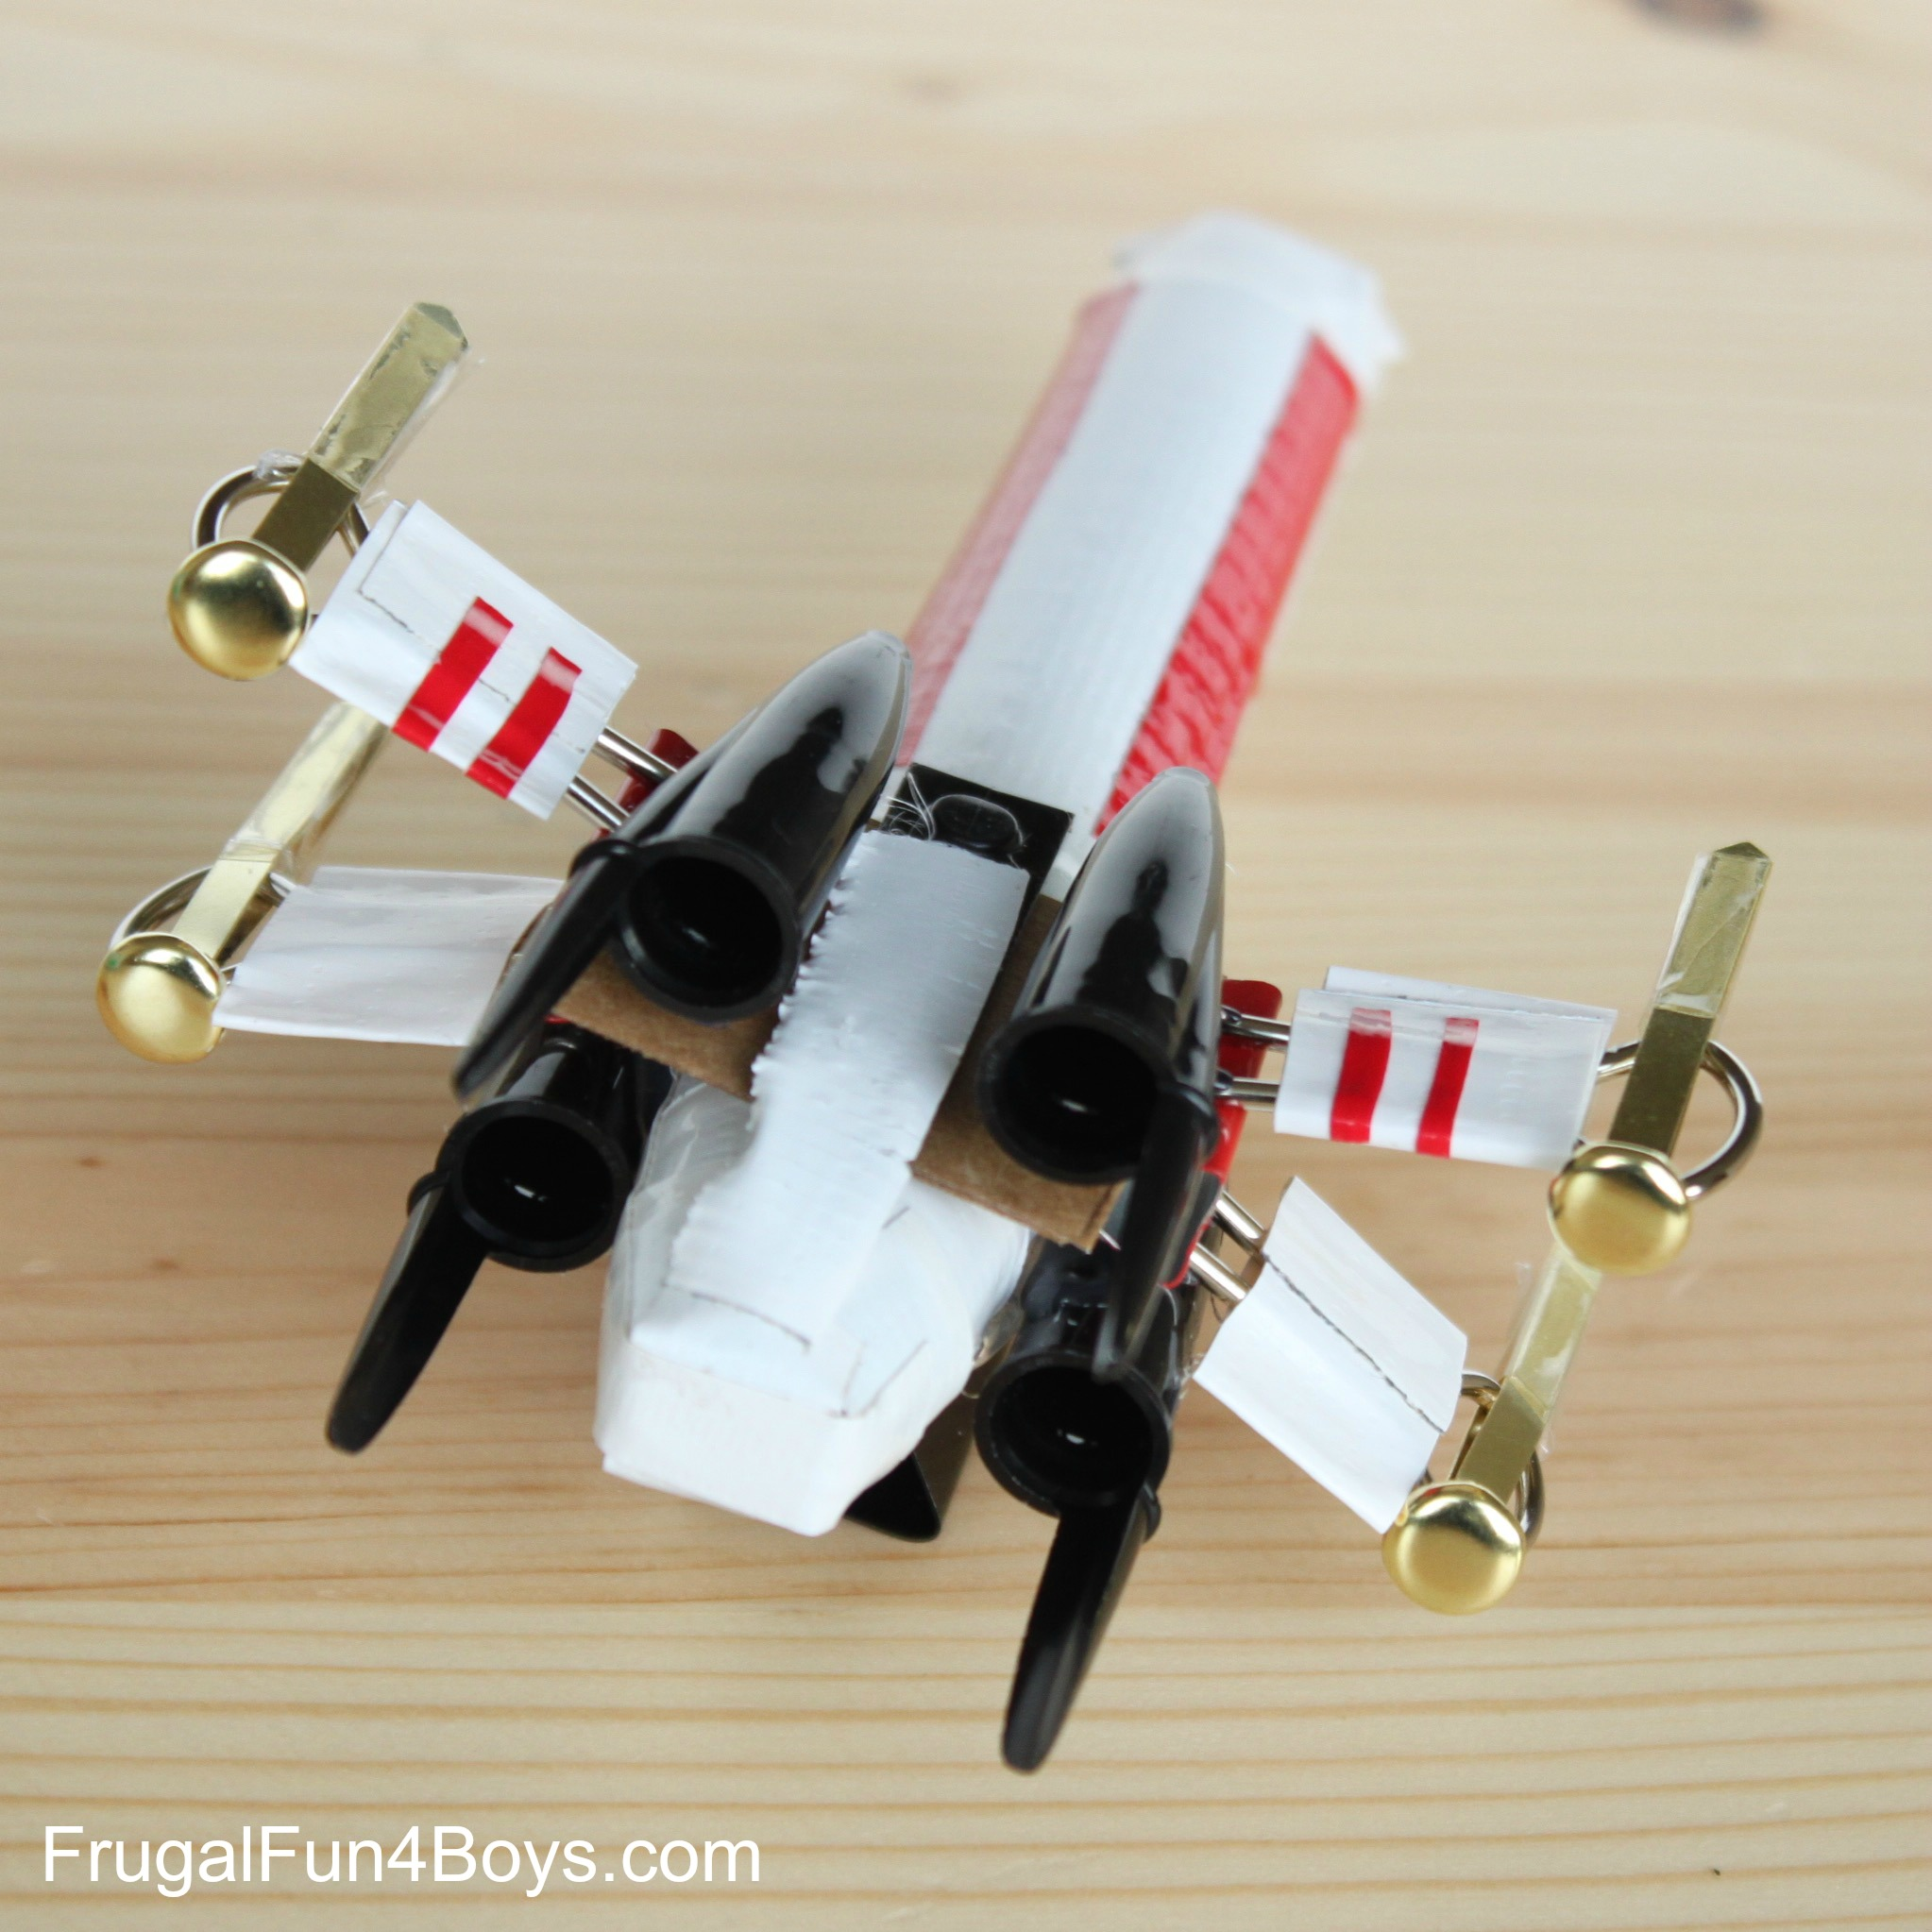 cool office supplies. How To Build A Star Wars X-Wing Out Of Office Supplies Cool U